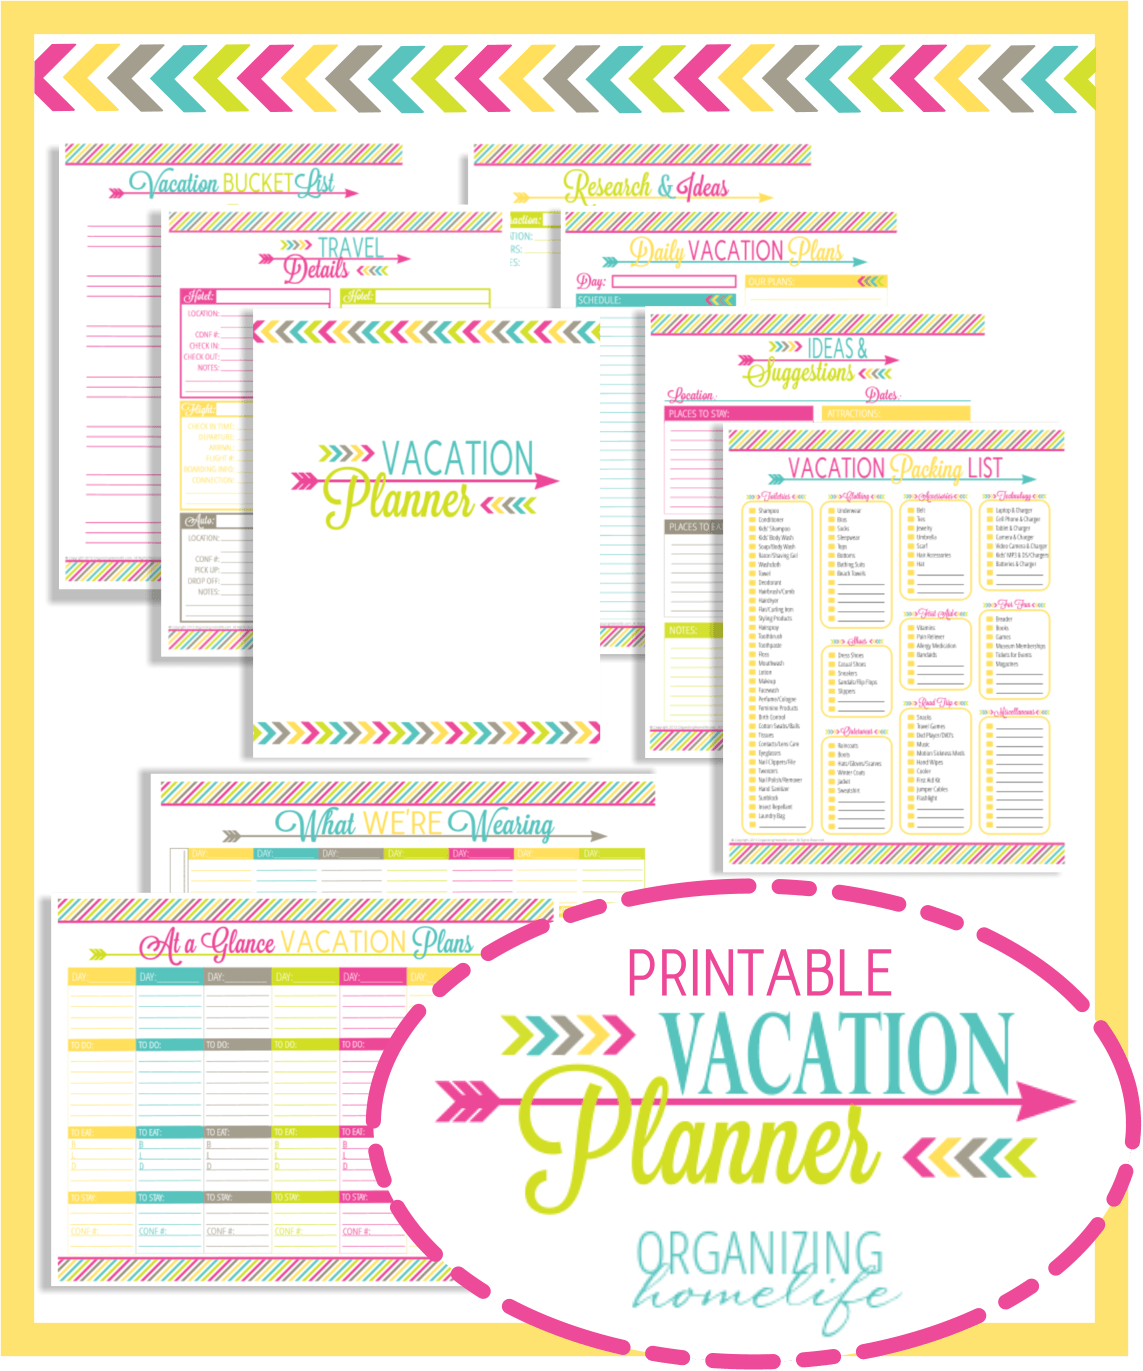 Organizing Printable Images Gallery Category Page 1